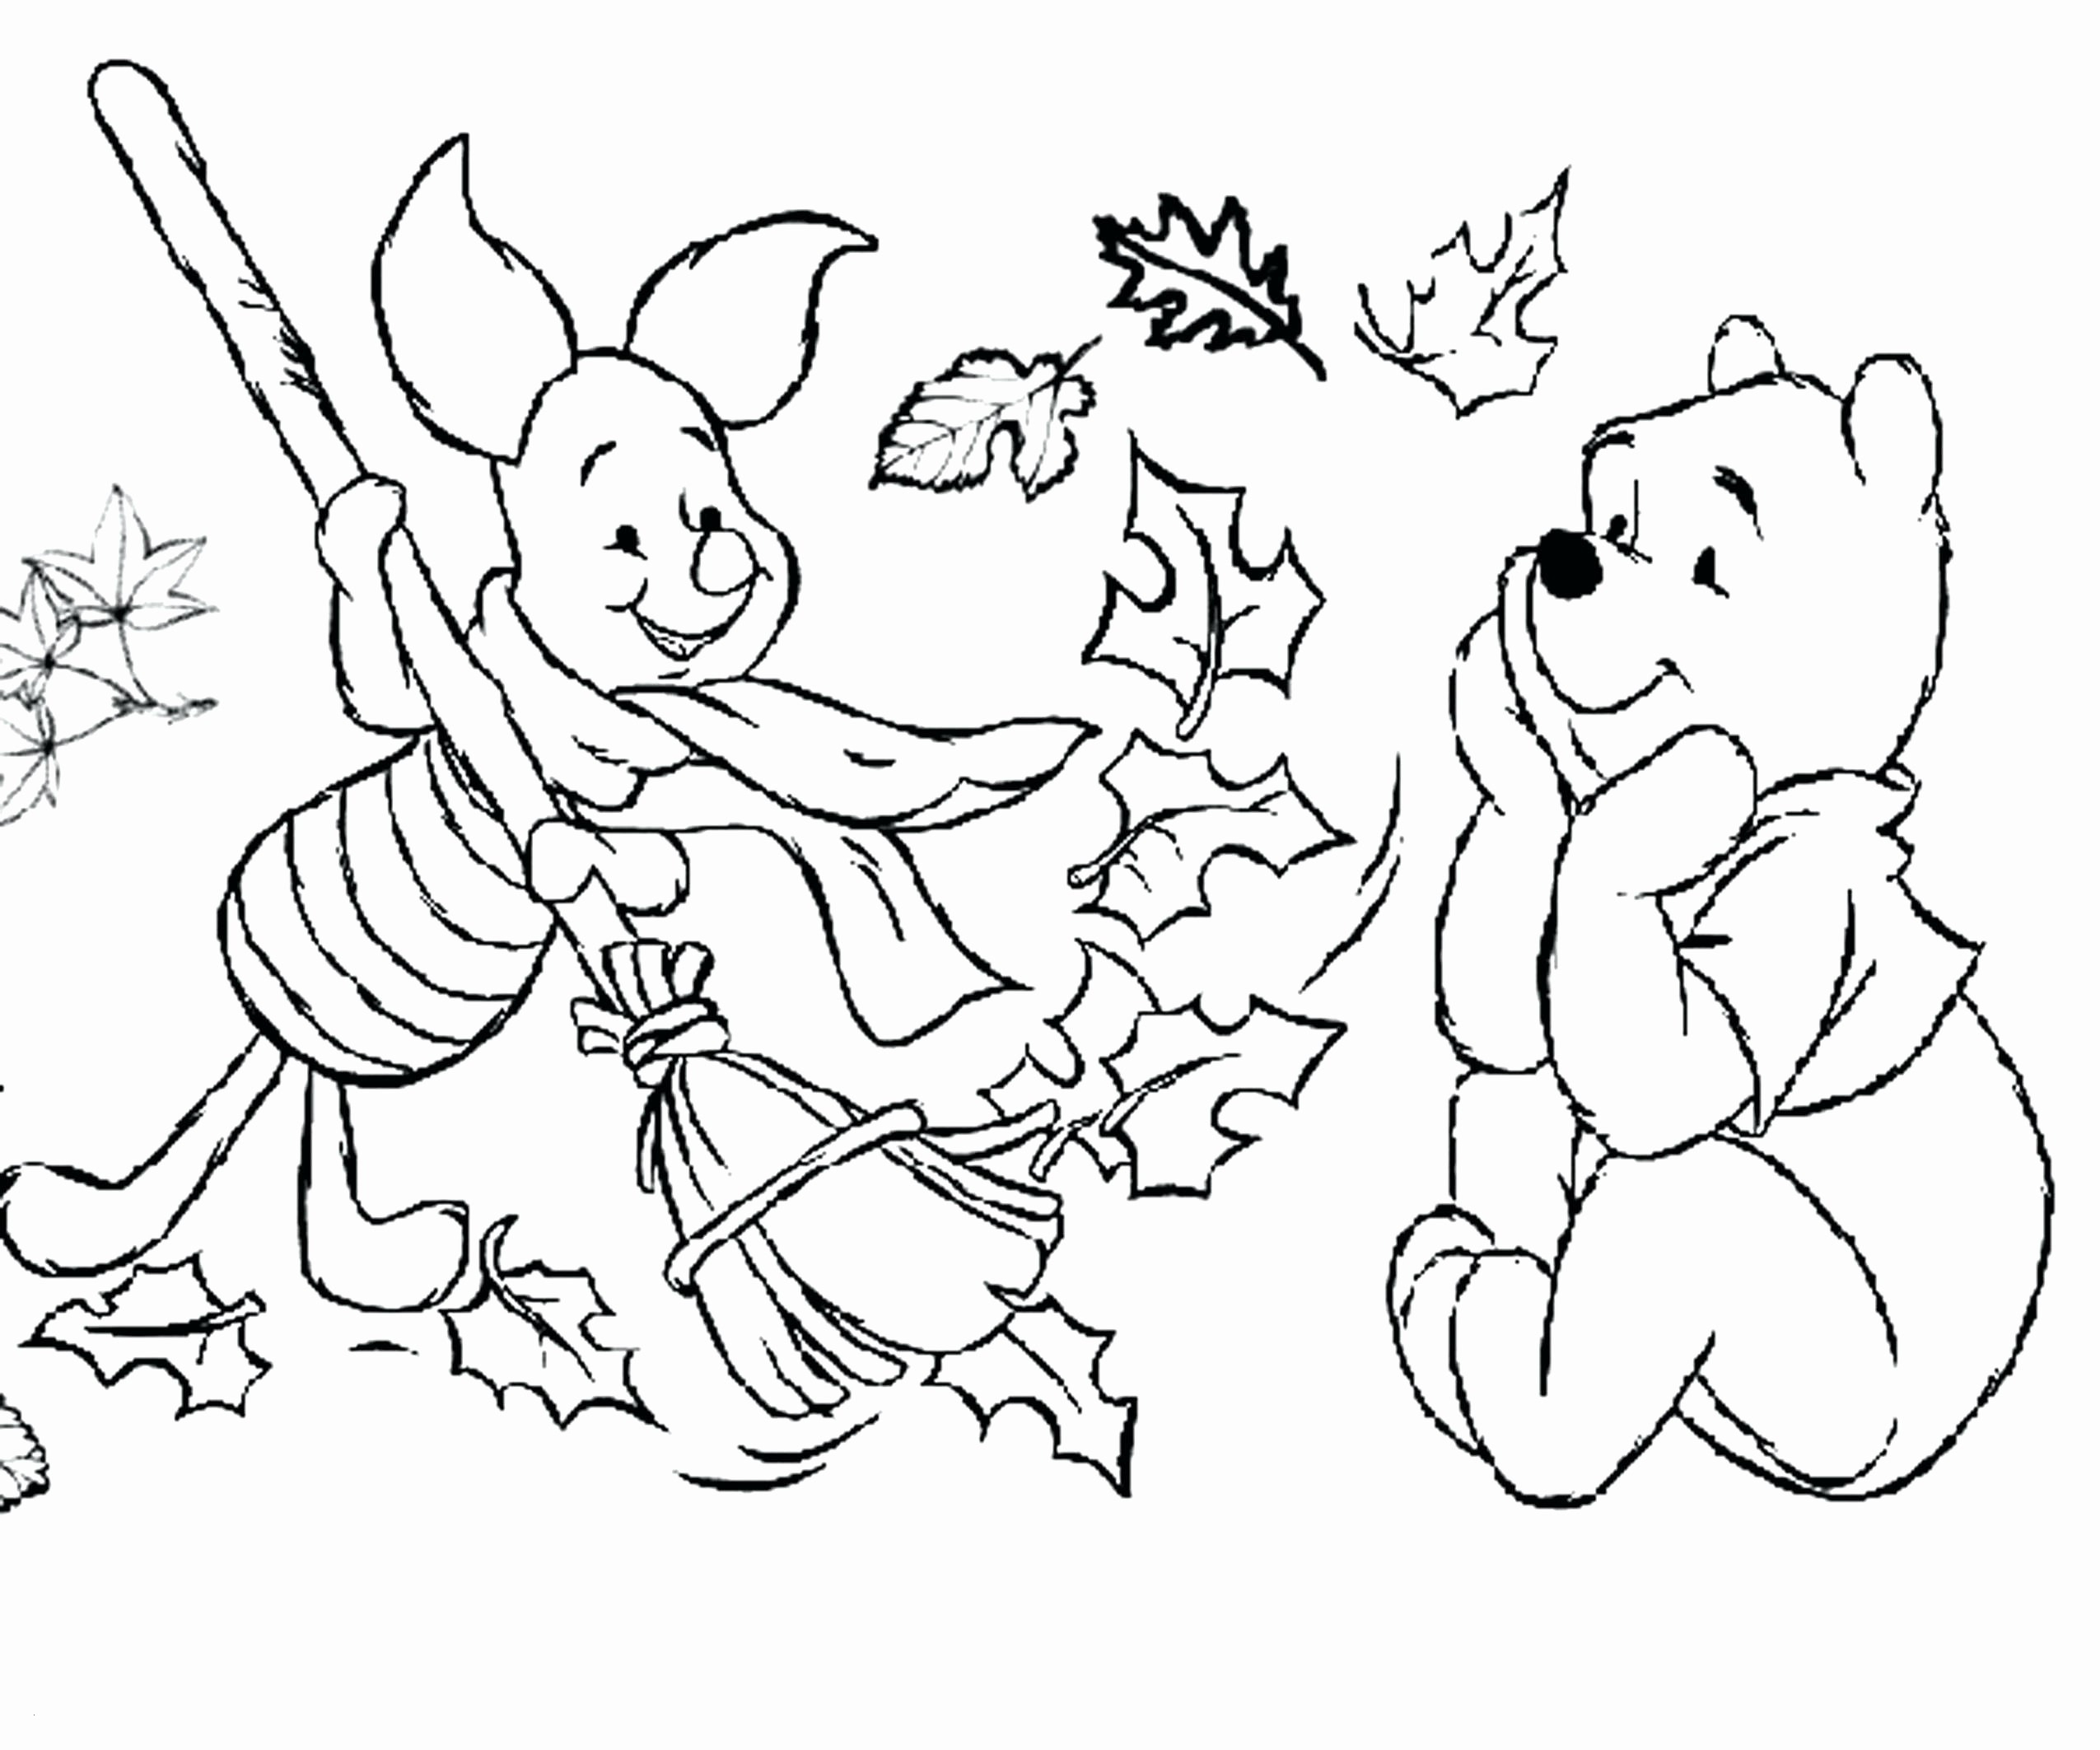 dragon ball z coloring pages Download-Dragon Ball Z Coloring Pages Autumn Coloring Pages Printable Awesome Kids Printable Coloring Pages Elegant 14-l